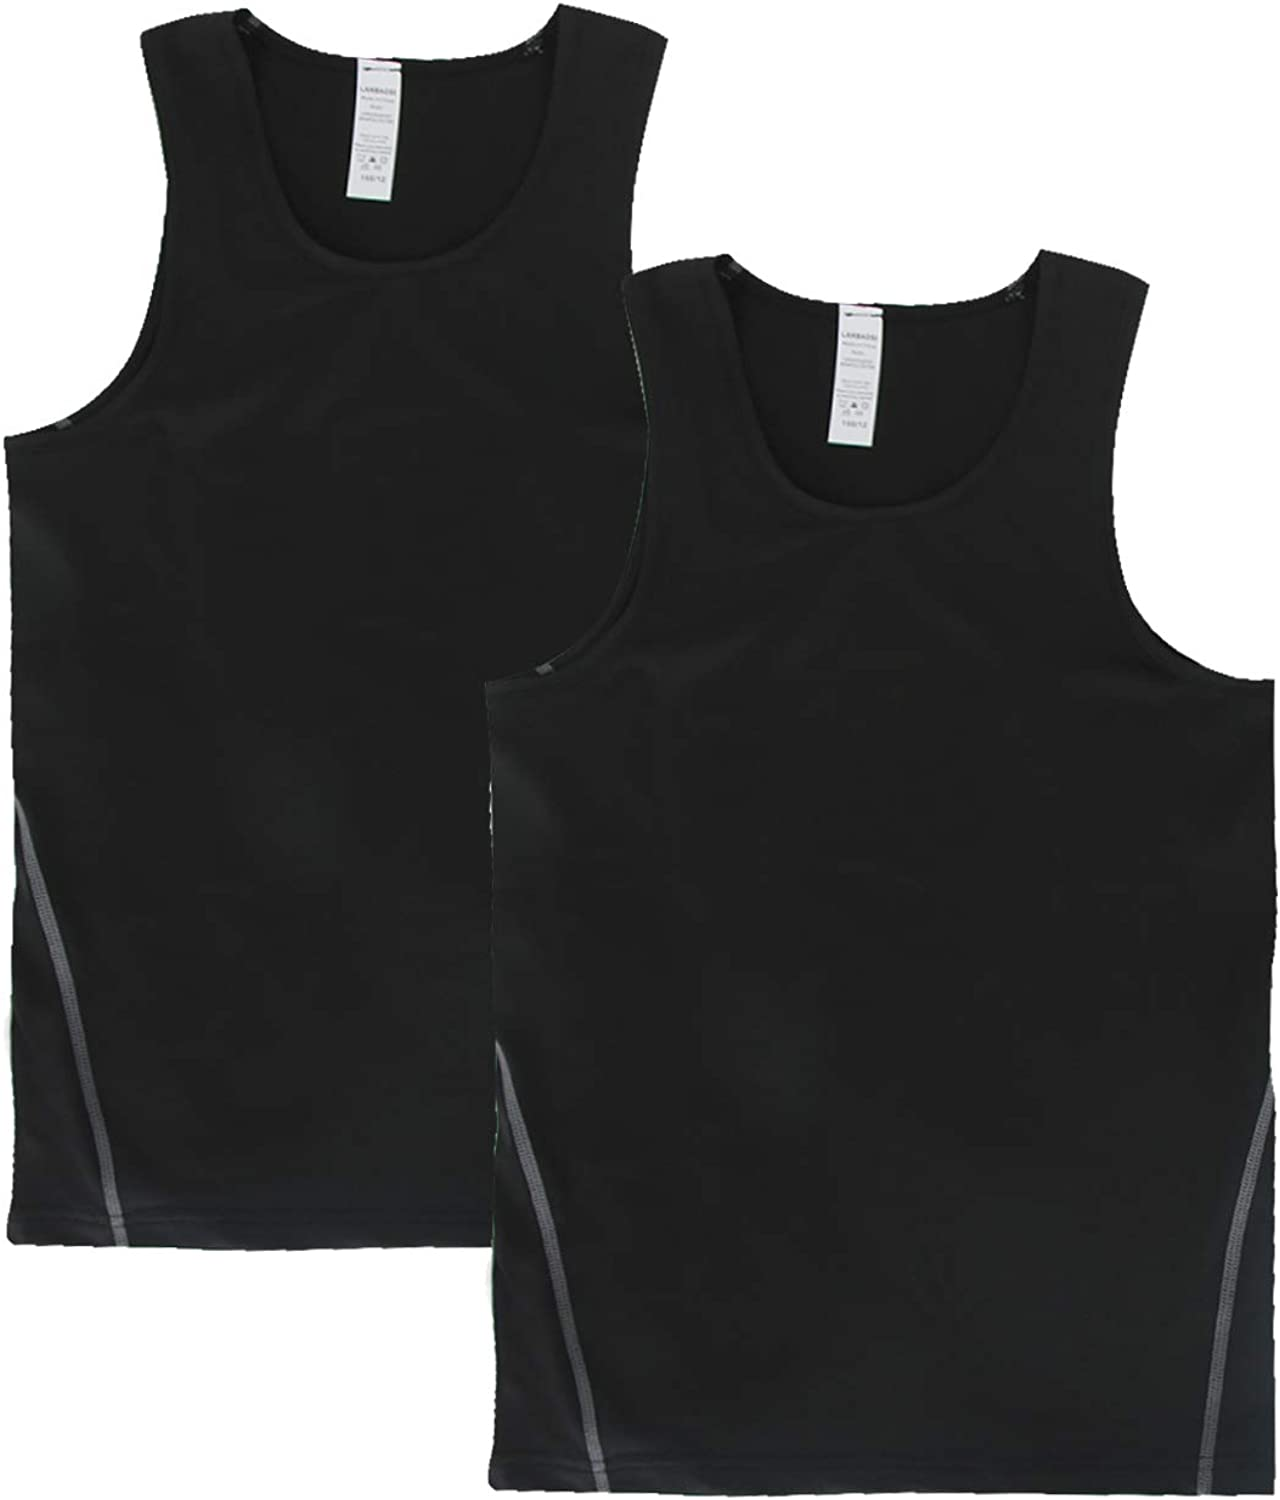 Junyue 2 Pack Boys Active Base Layer Tank Tops Quick Dry Youth Football Compression Sleeveless Shirts